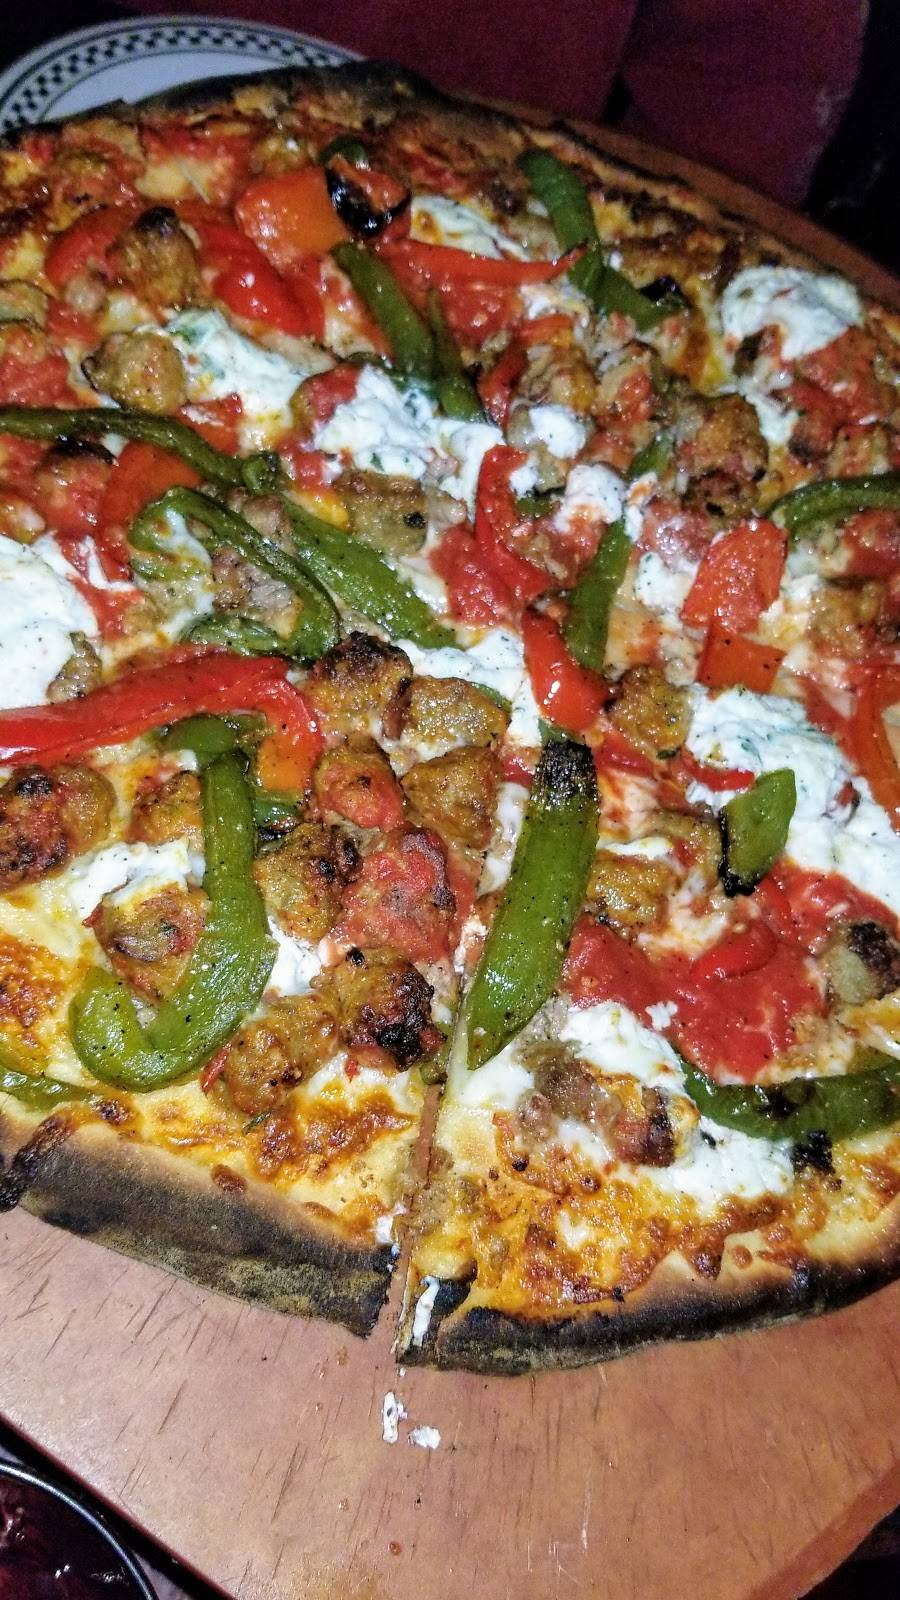 Anthonys Coal Fired Pizza | meal takeaway | 50 E Wynnewood Rd, Wynnewood, PA 19096, USA | 6106455453 OR +1 610-645-5453